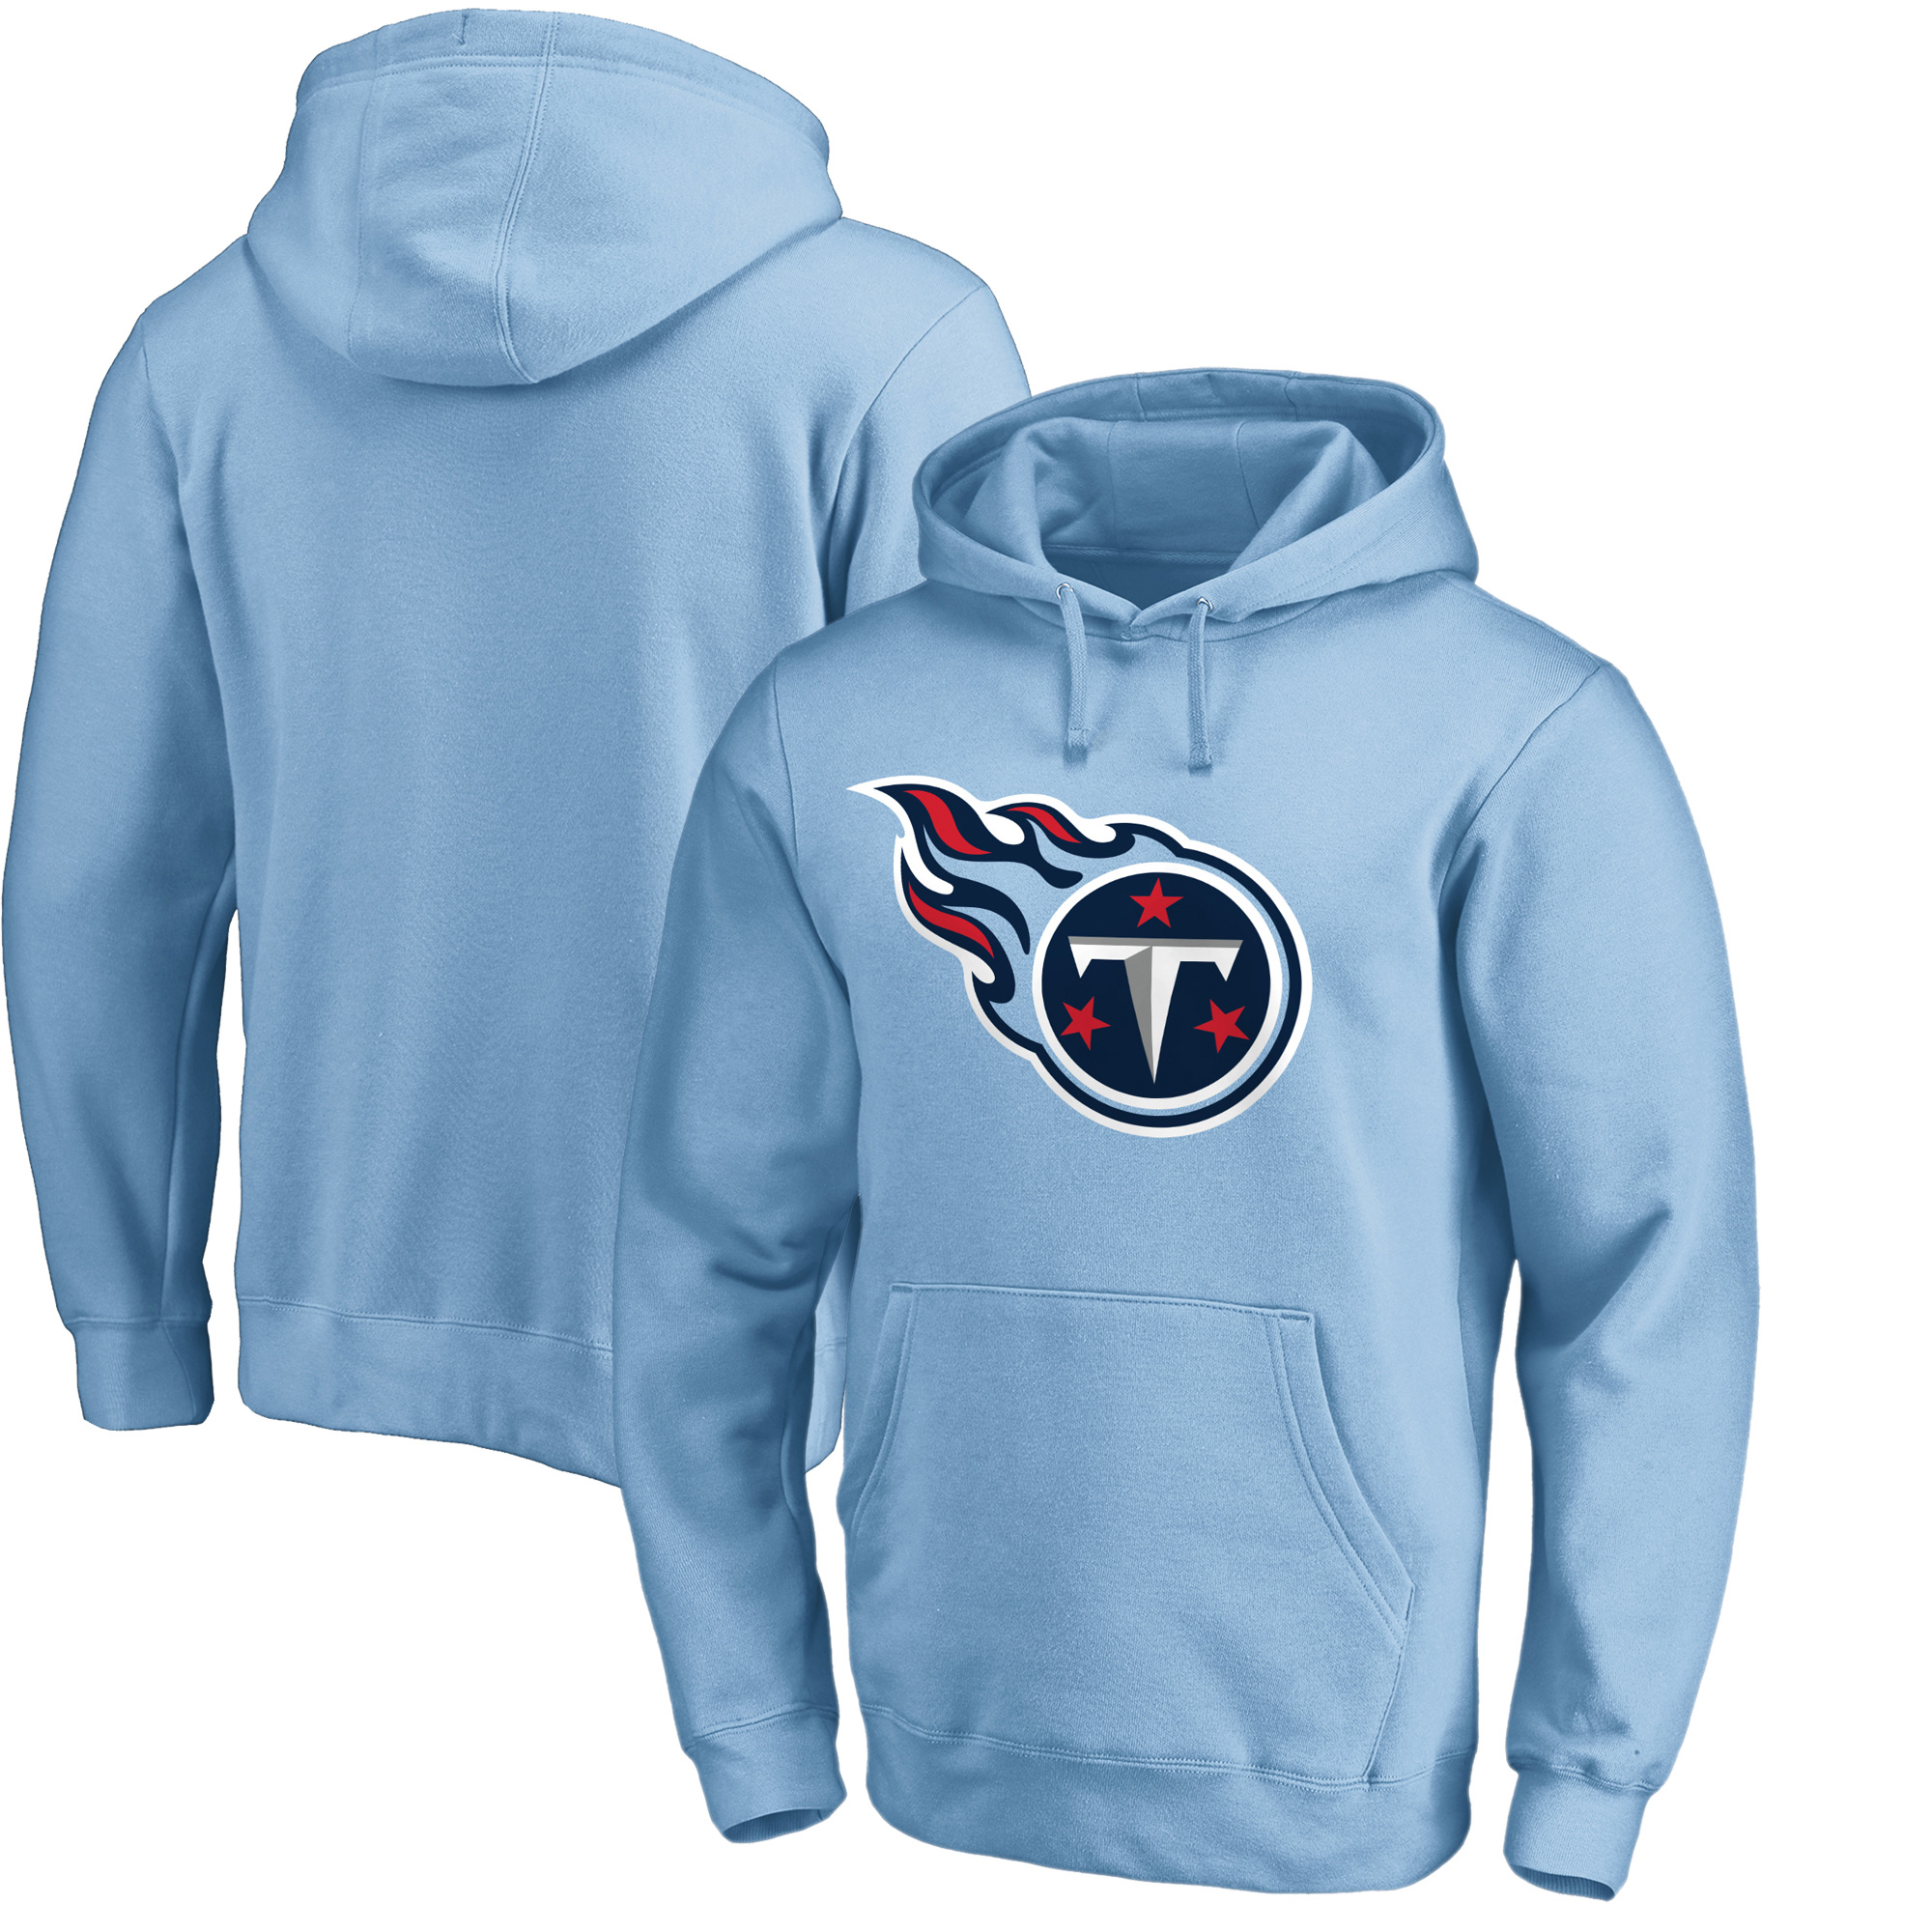 Tennessee Titans NFL Pro Line by Fanatics Branded Primary Logo Pullover Hoodie - Light Blue